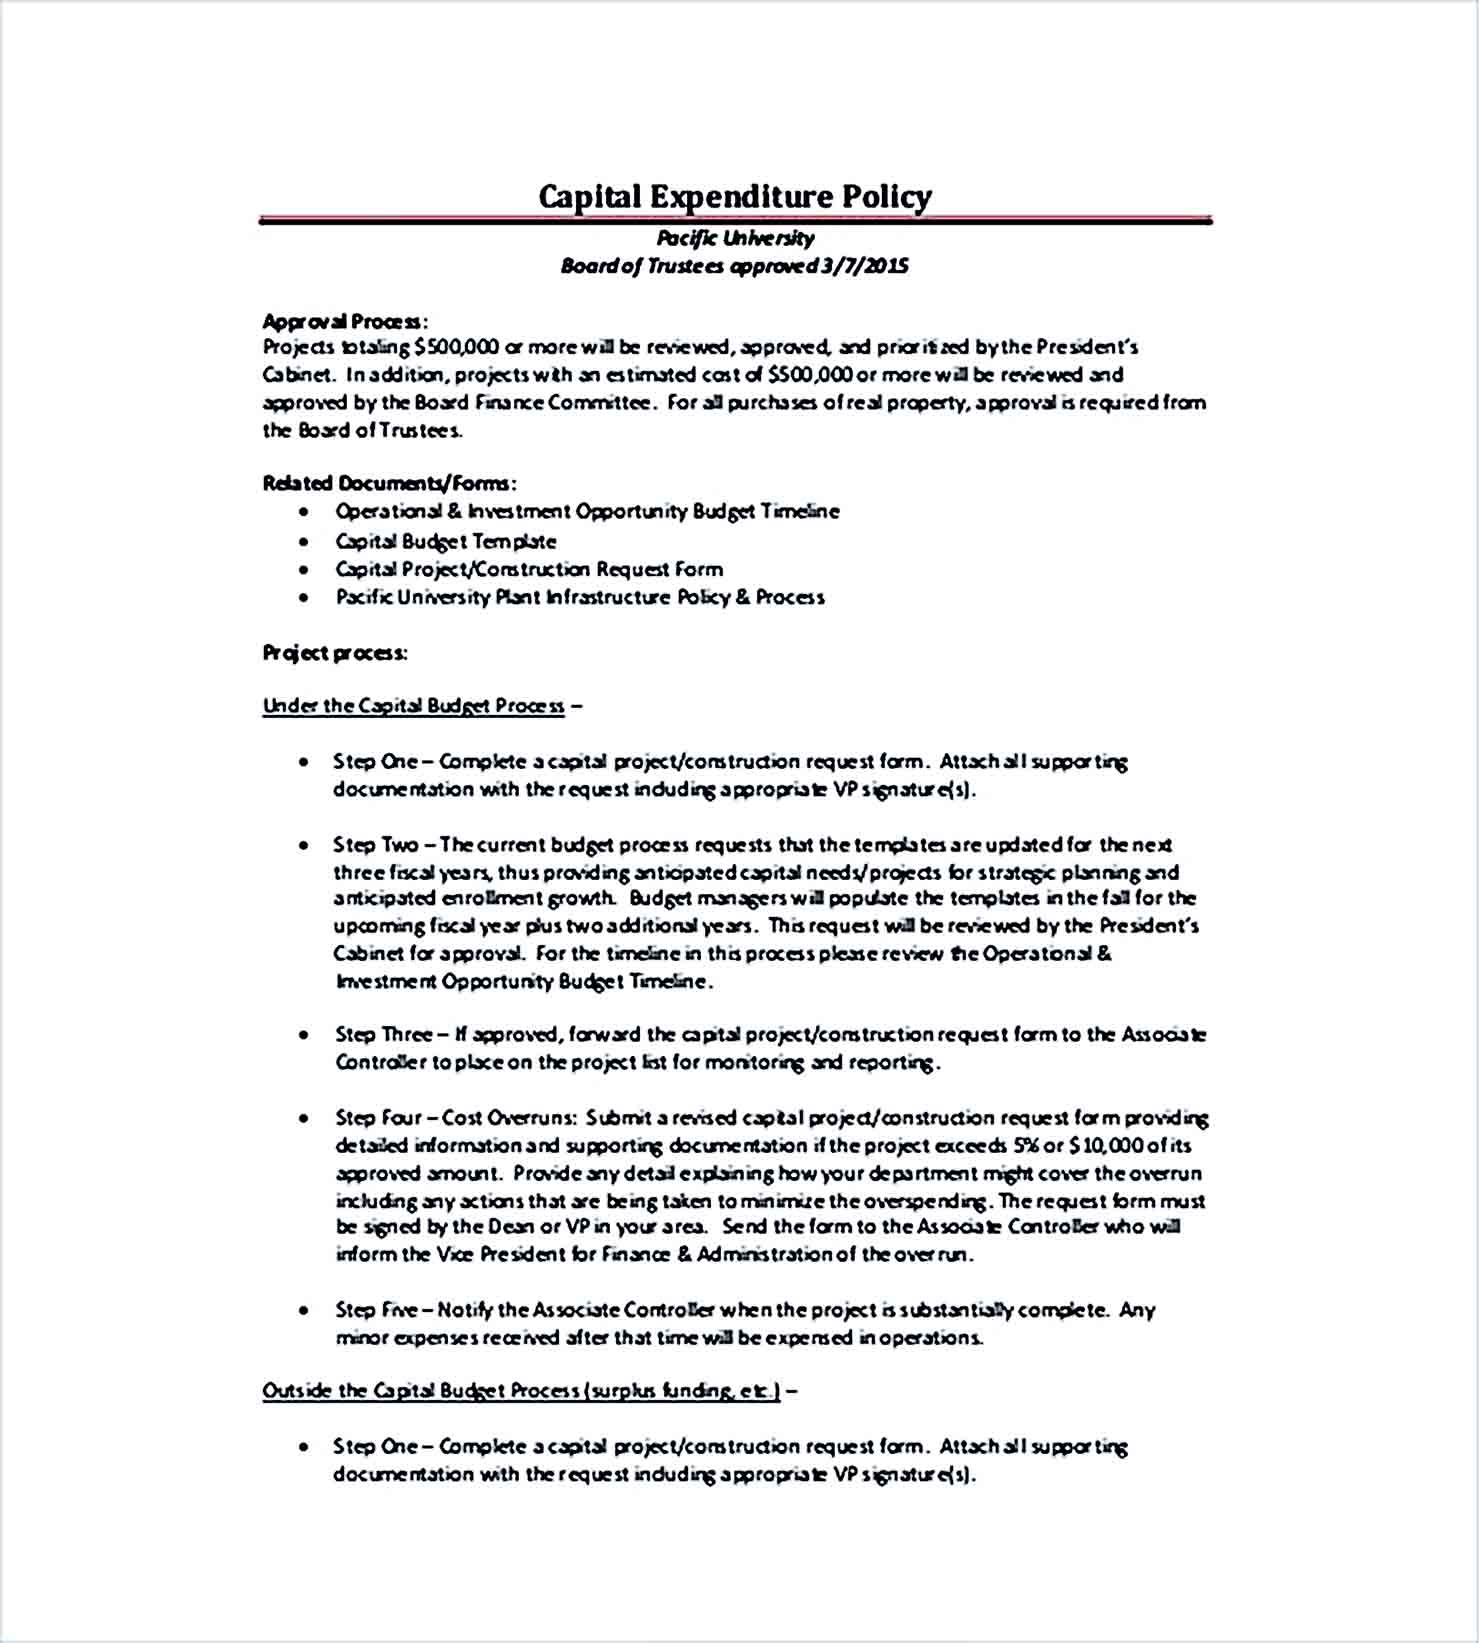 Sample Capital Expenditure Budget Policy